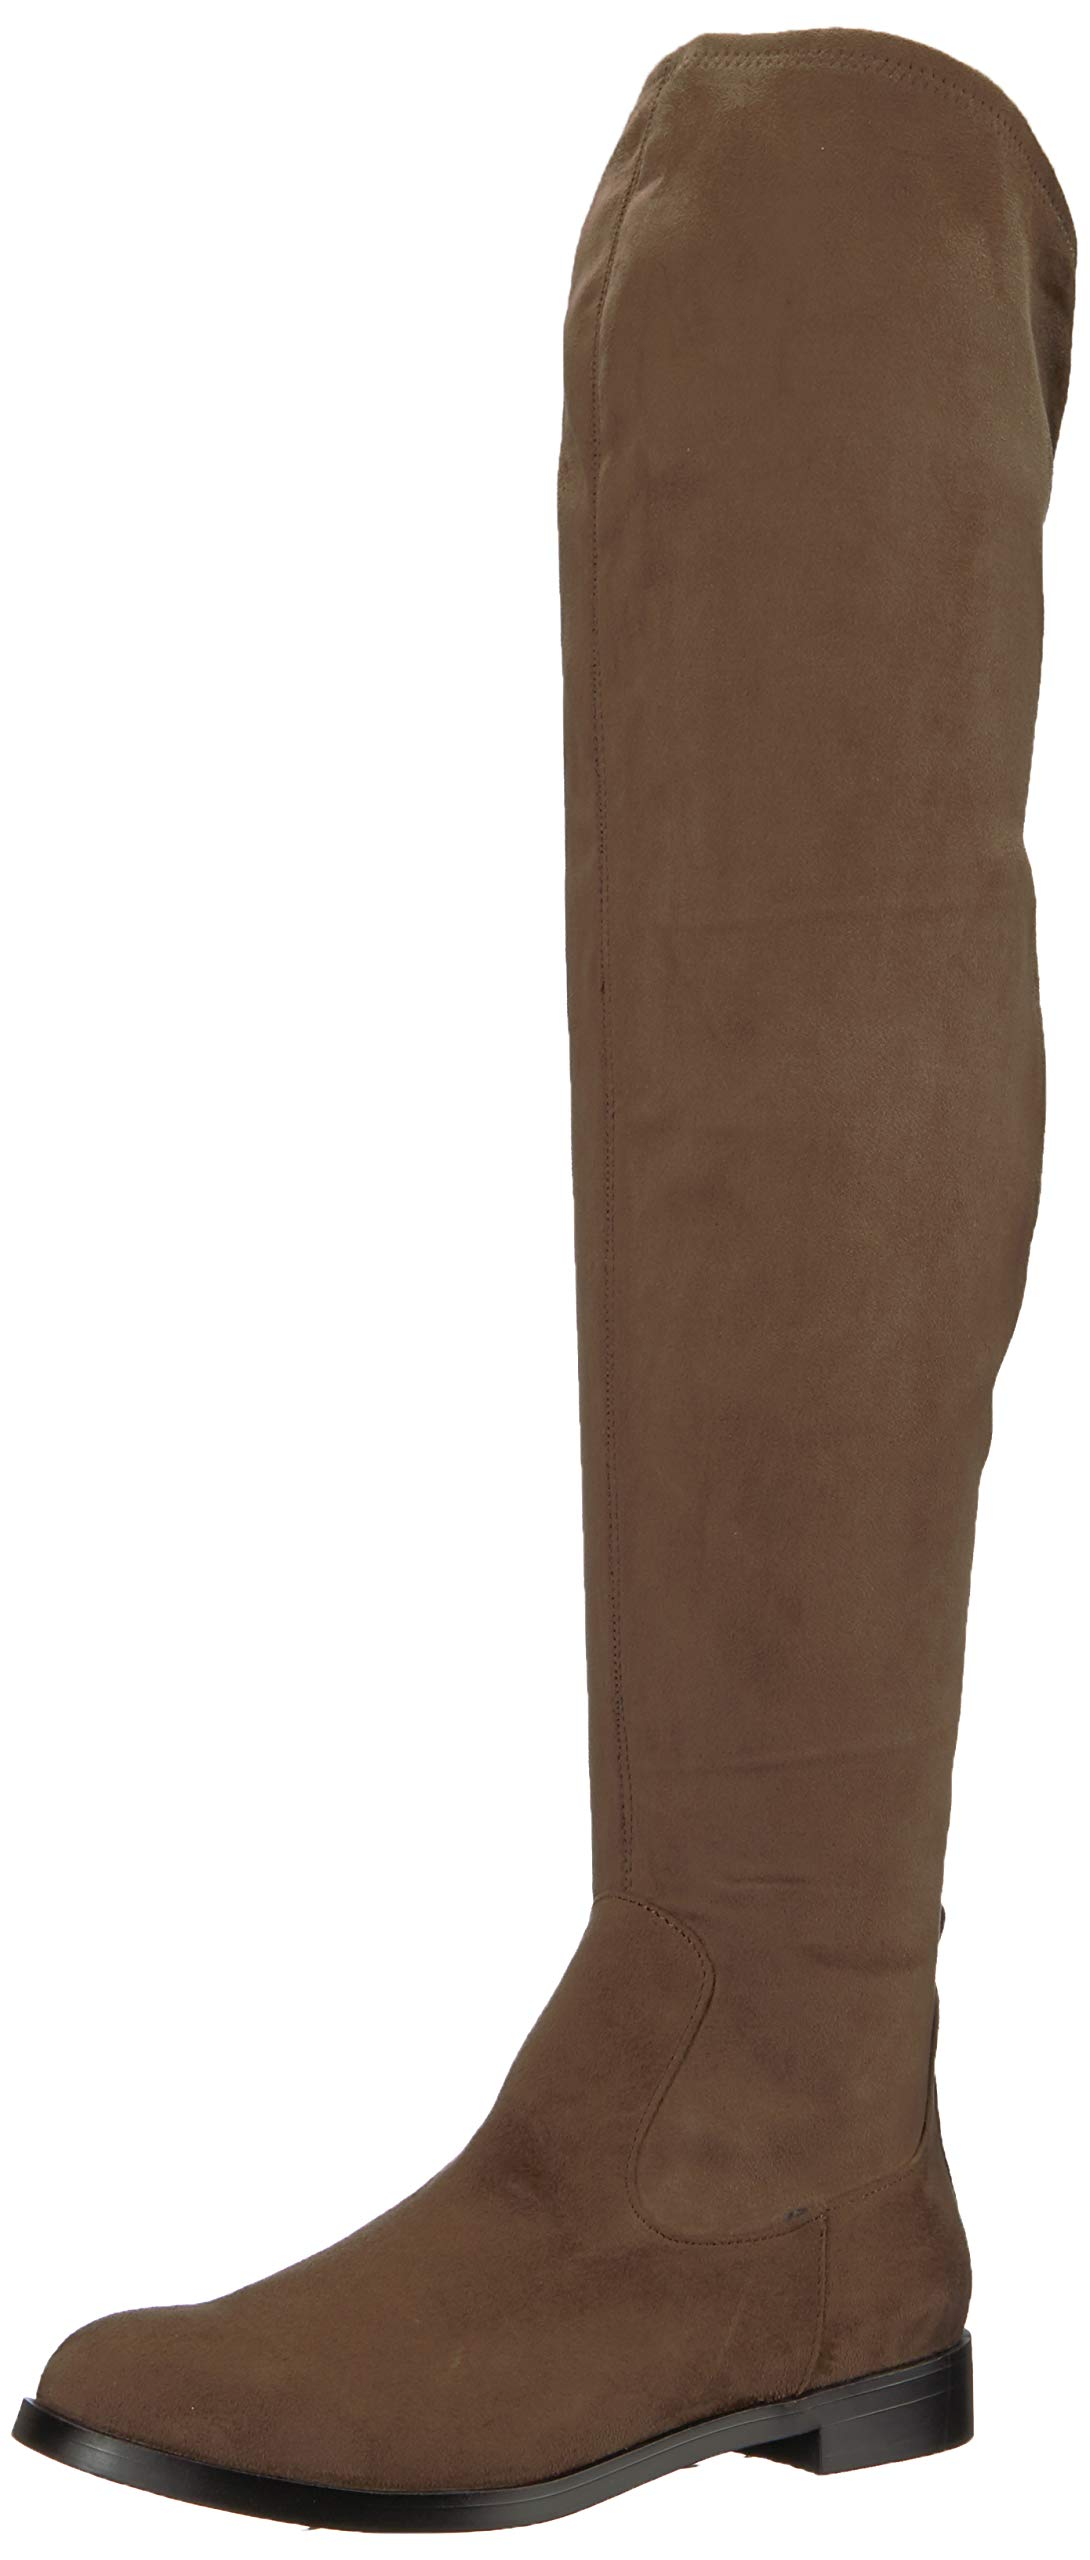 Kenneth Cole REACTION Women's Wind-y Over The Knee Stretch Boot, Dark Taupe, 9.5 M US by Kenneth Cole REACTION